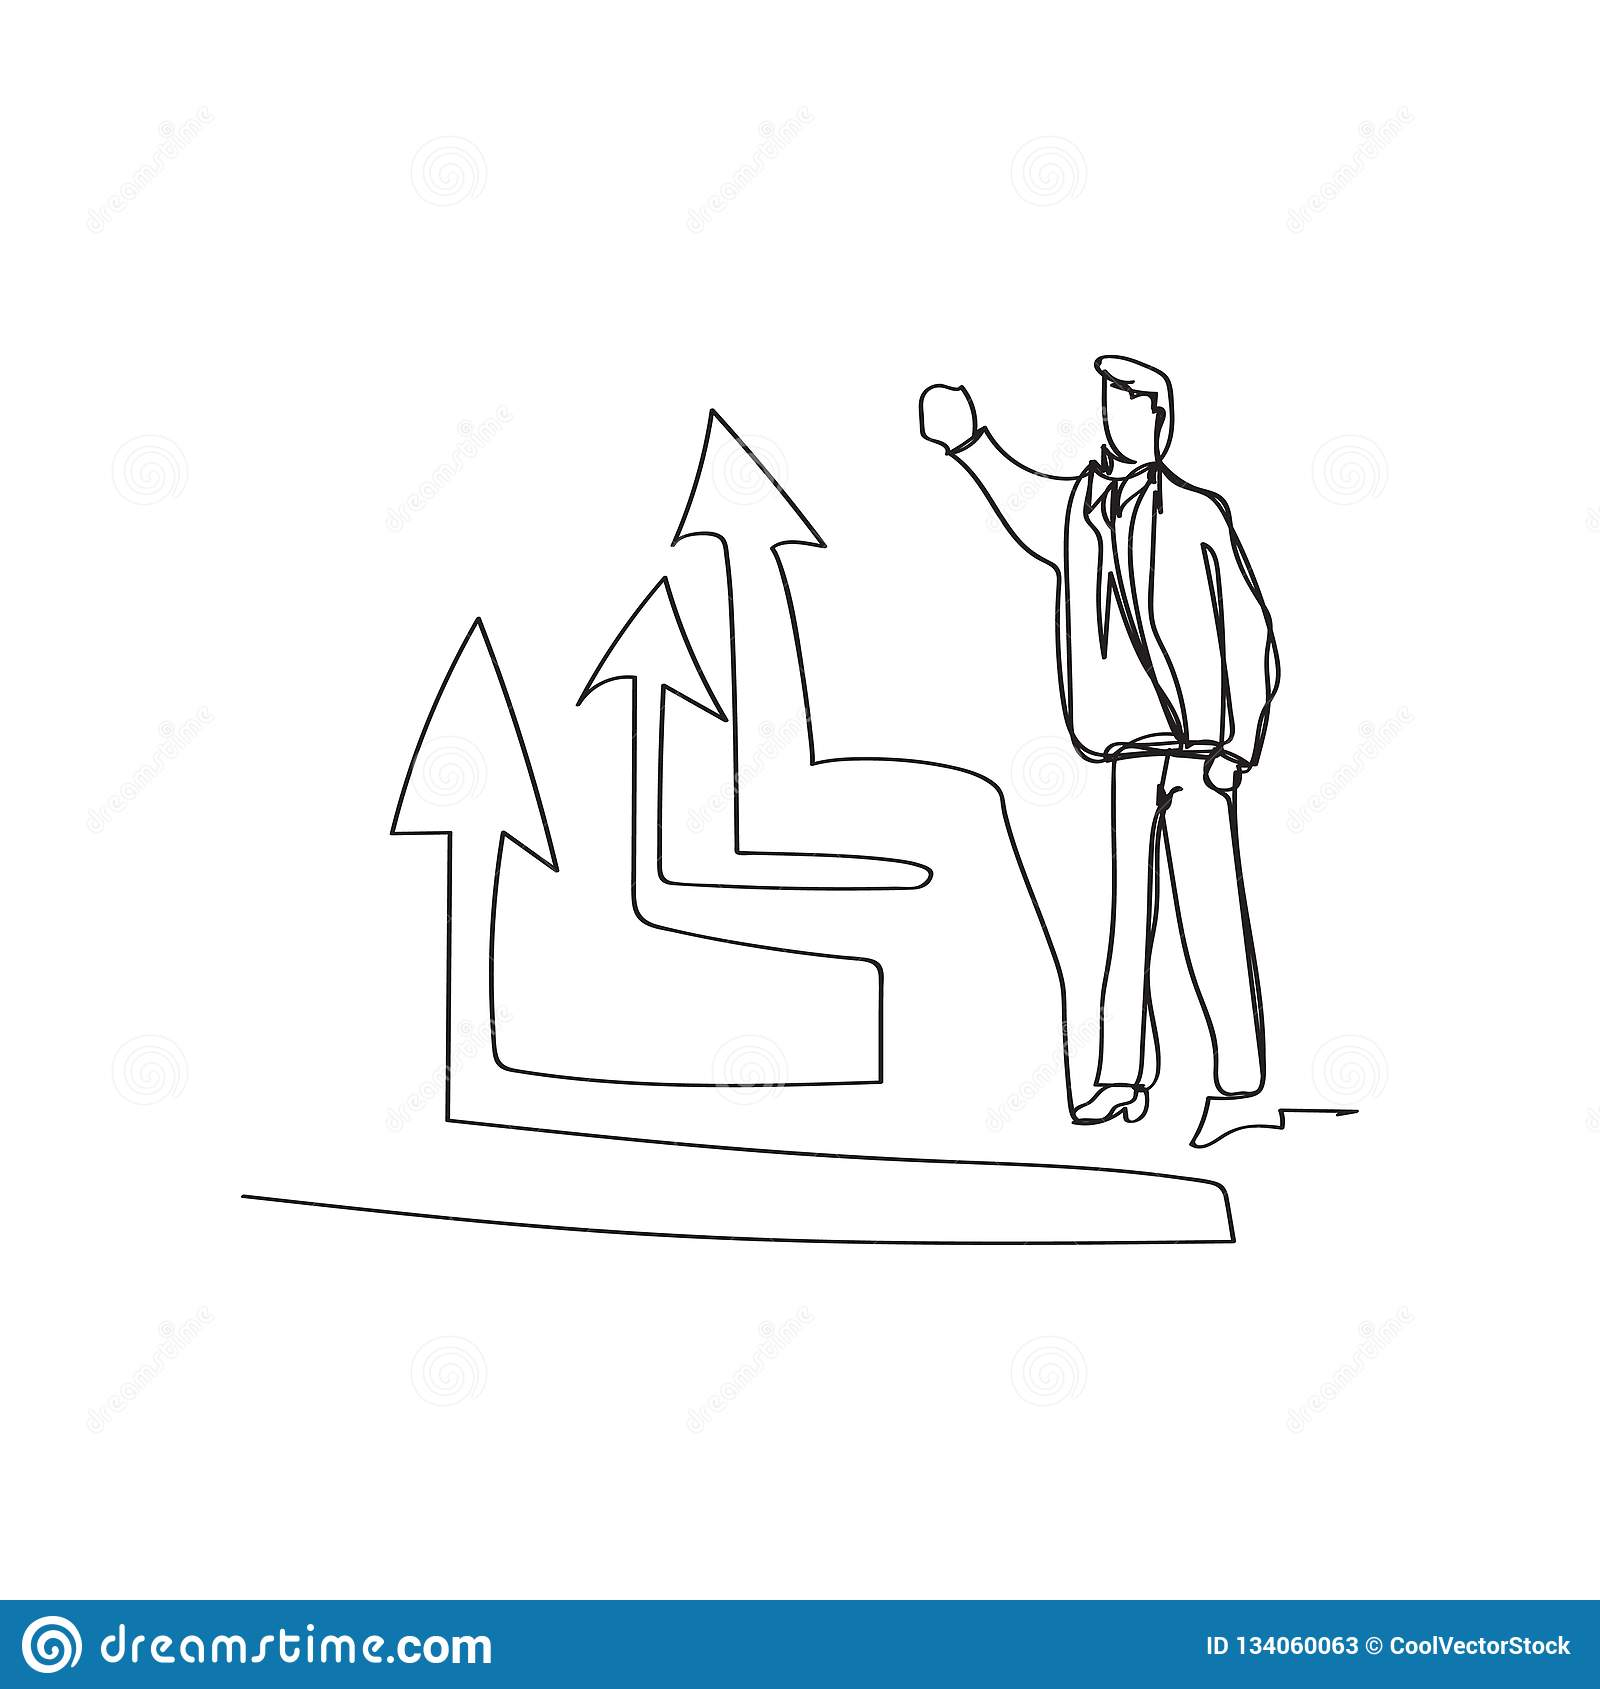 business situation - standing businessman presenting rising diagram in continuous line drawing style, thin linear vector